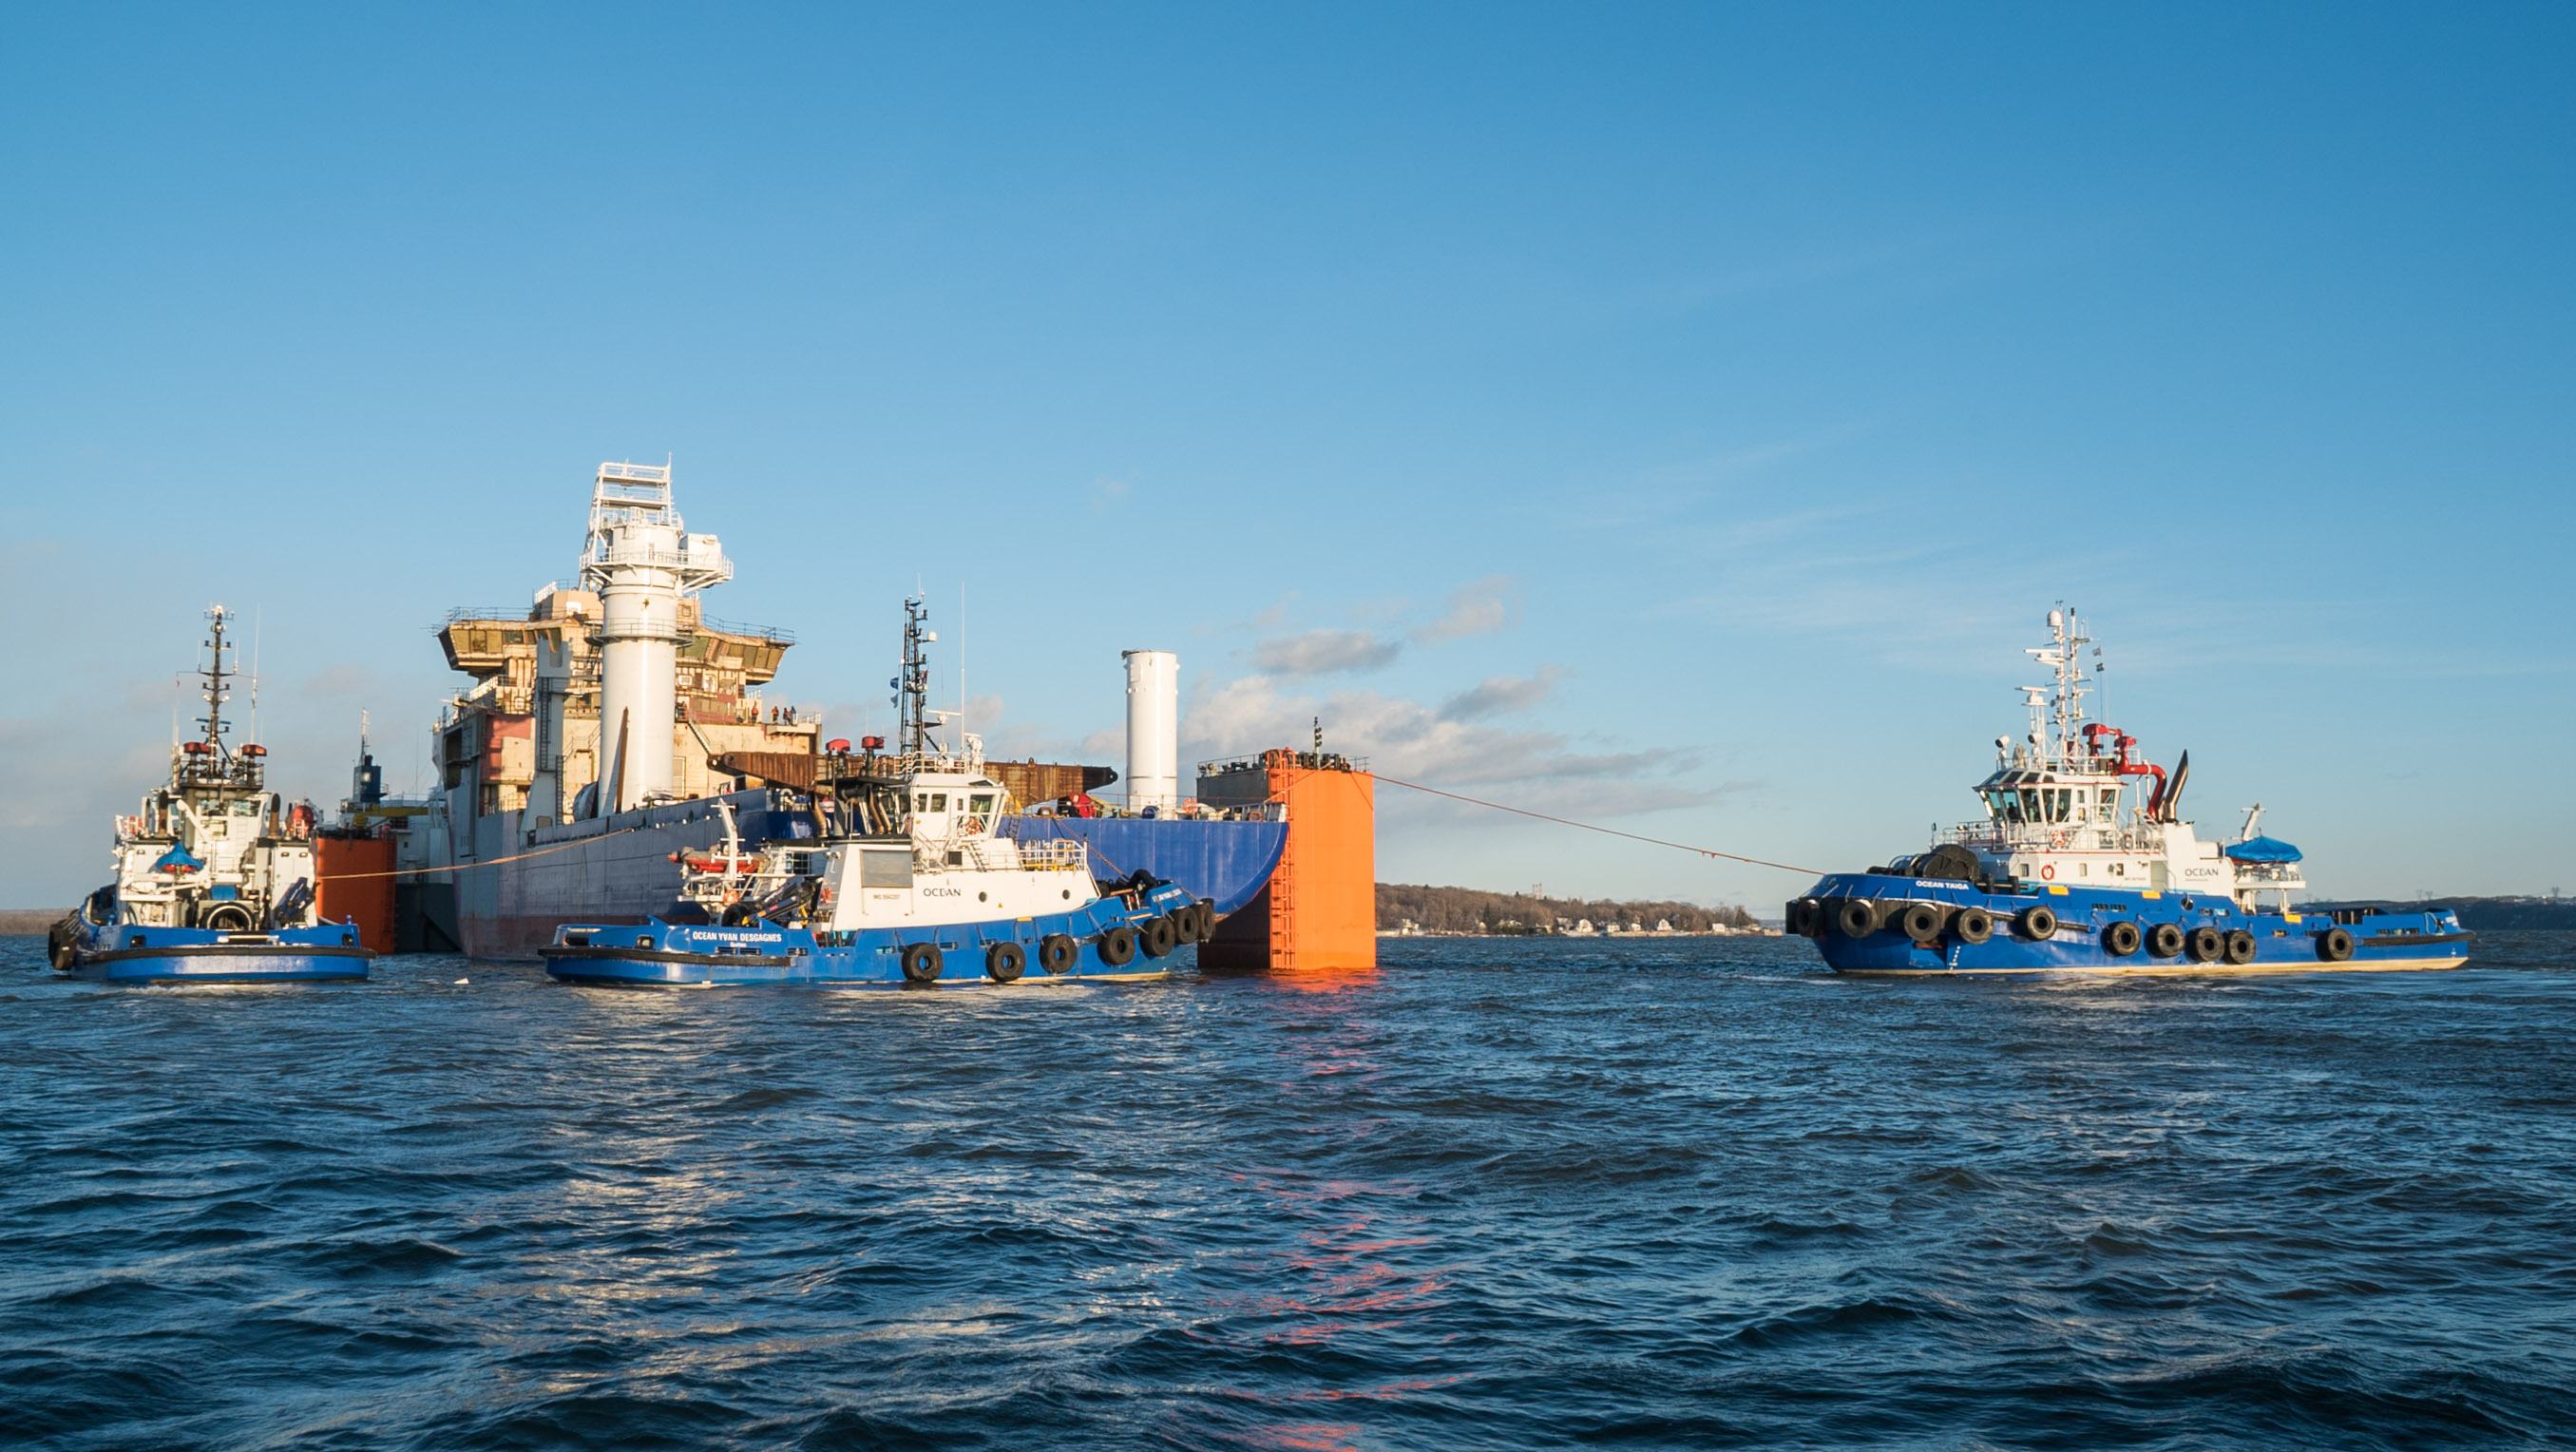 Ocean completes a complex maritime operation on the St. Lawrence